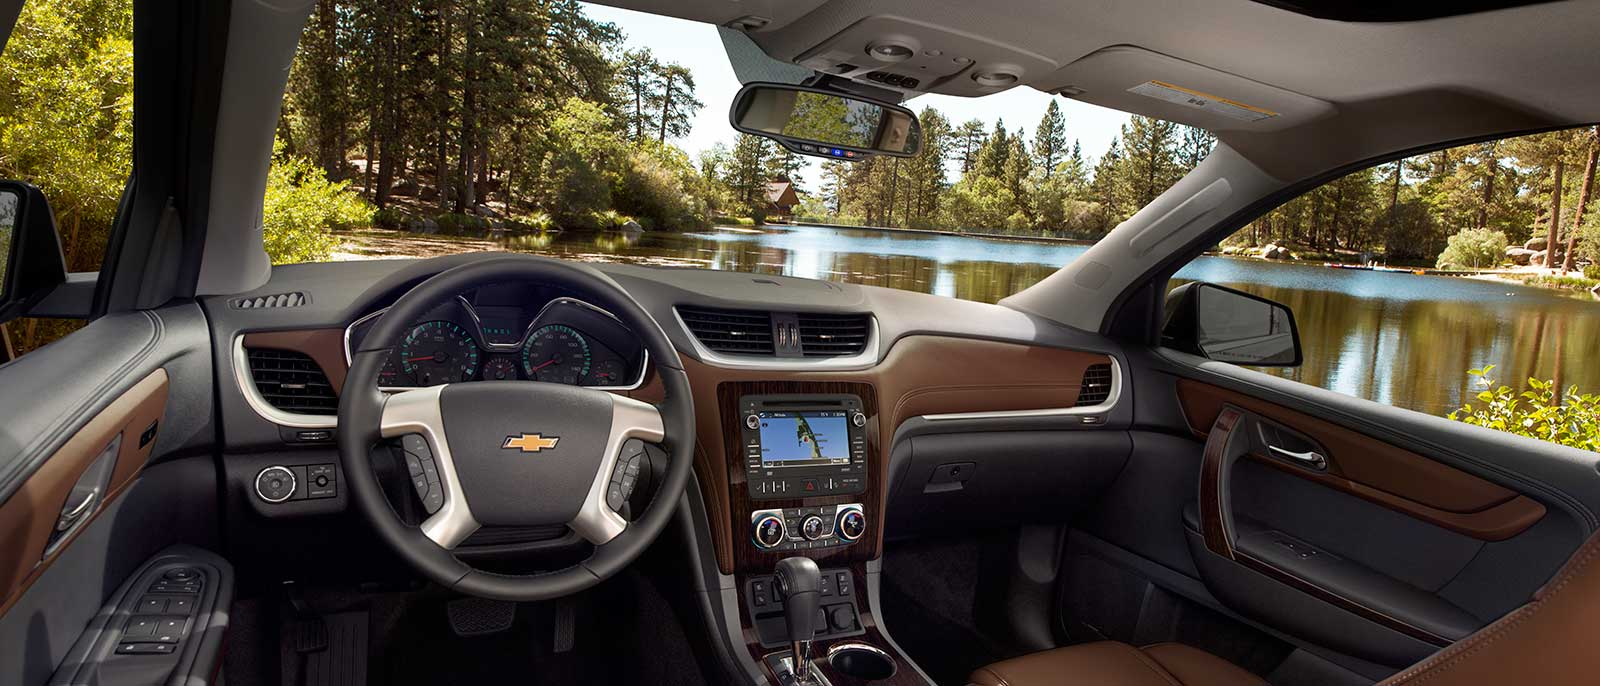 Introducing the Features of the 2017 Chevrolet Traverse